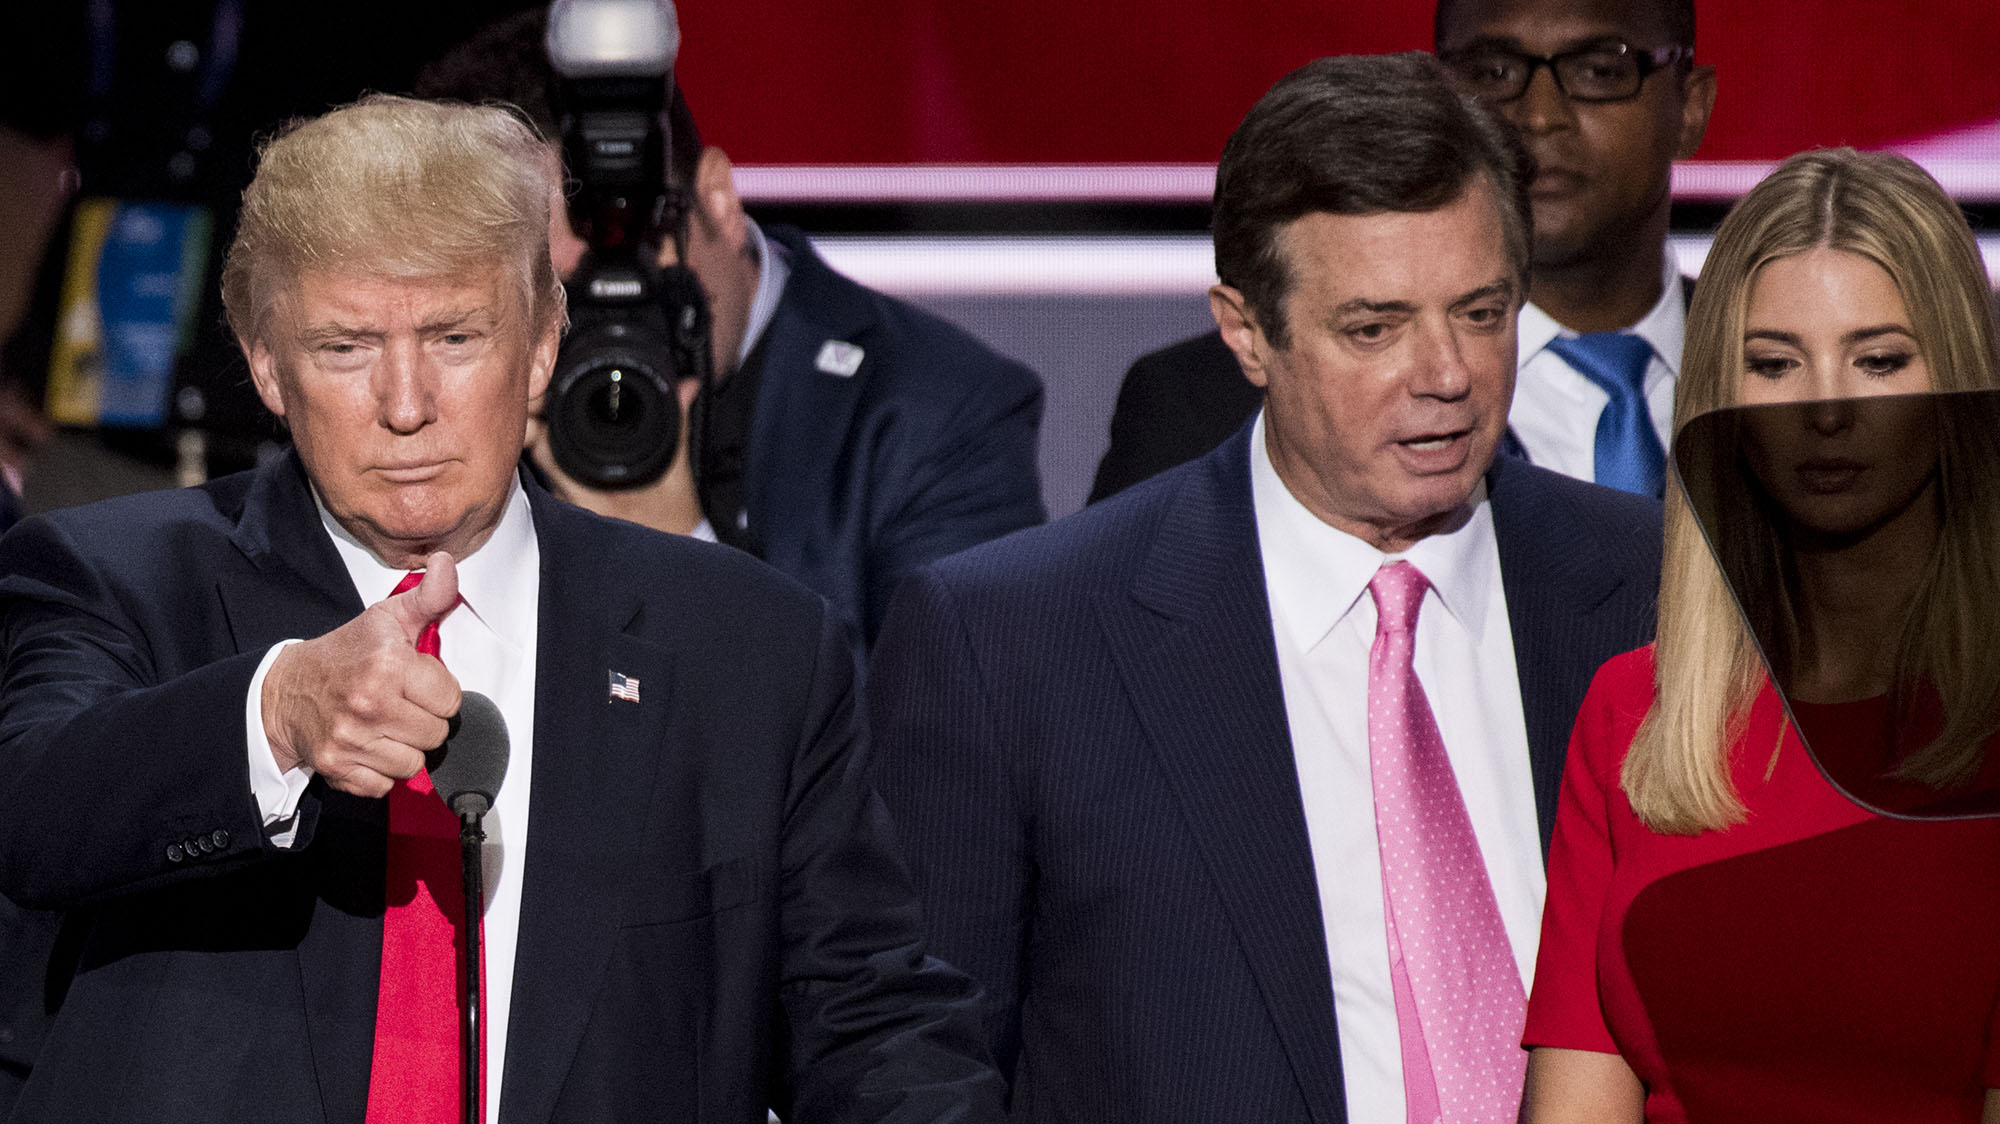 Federal Bureau of Investigation  had Paul Manafort wiretapped during election